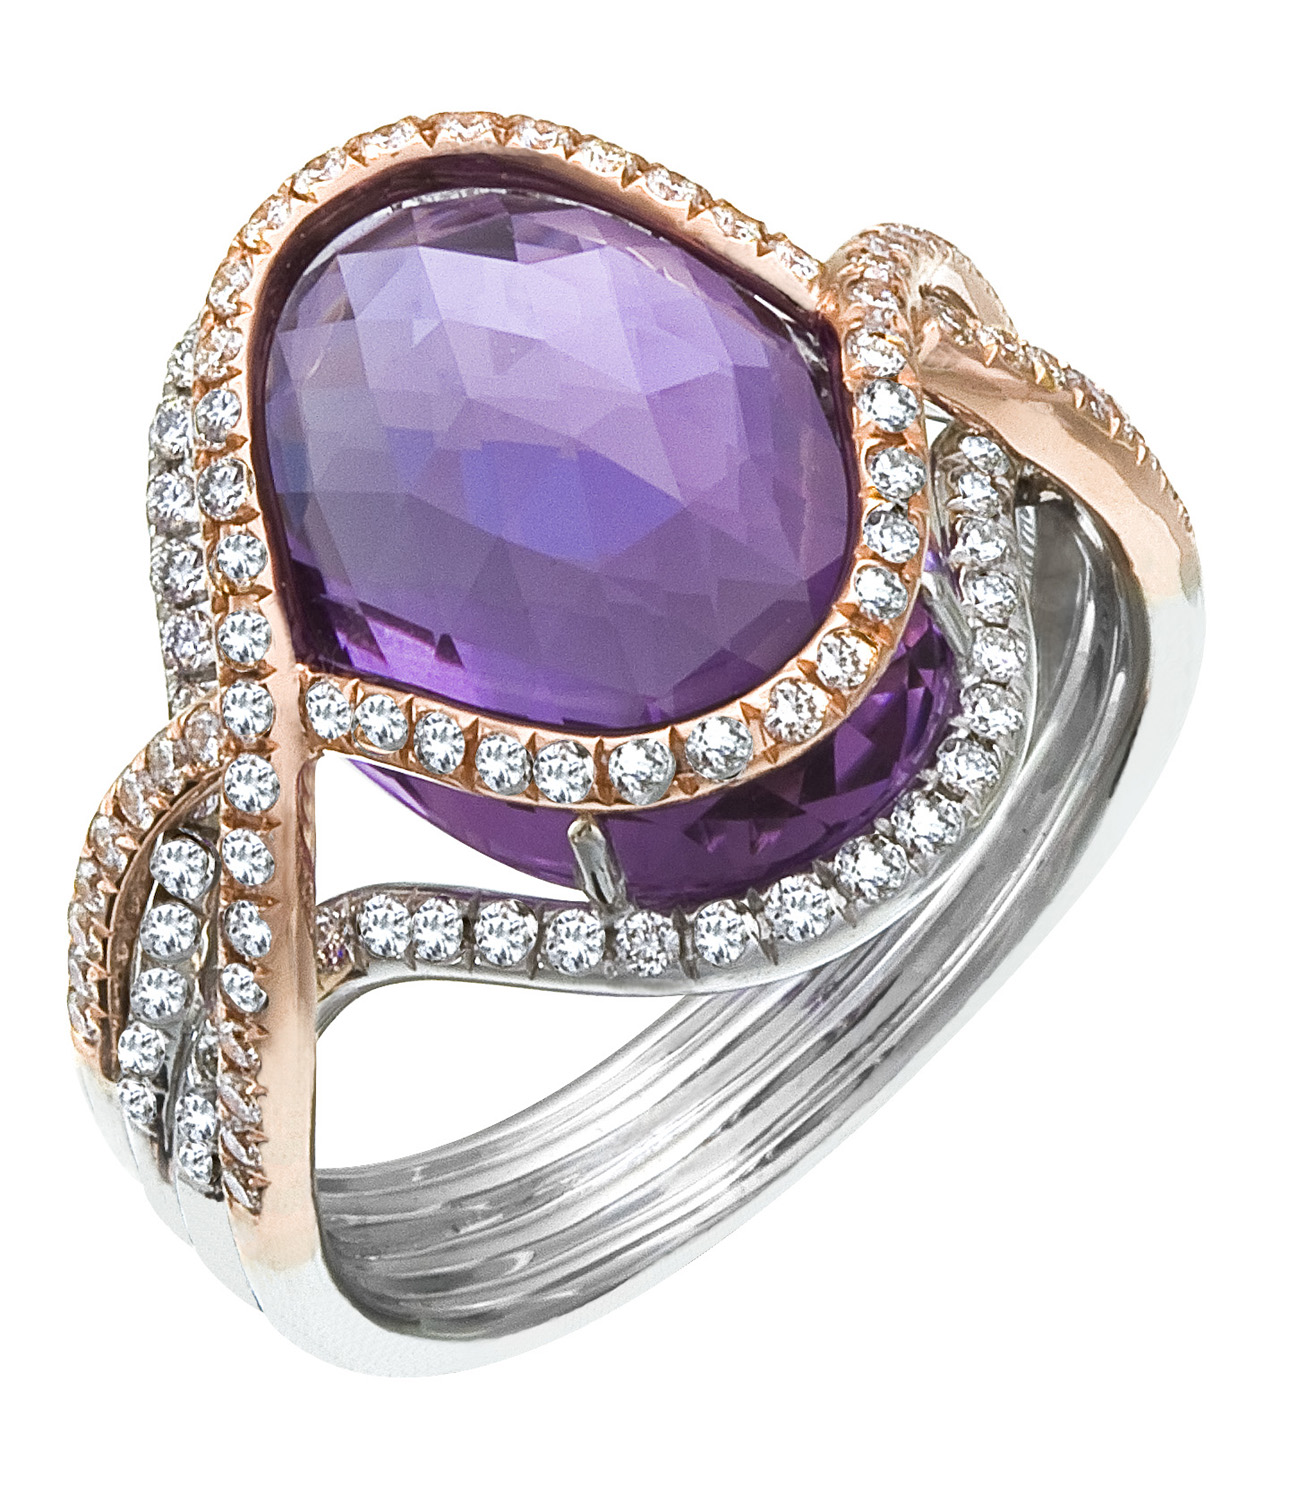 Two Tone White & Rose Gold La s Diamond & Amethyst Ring